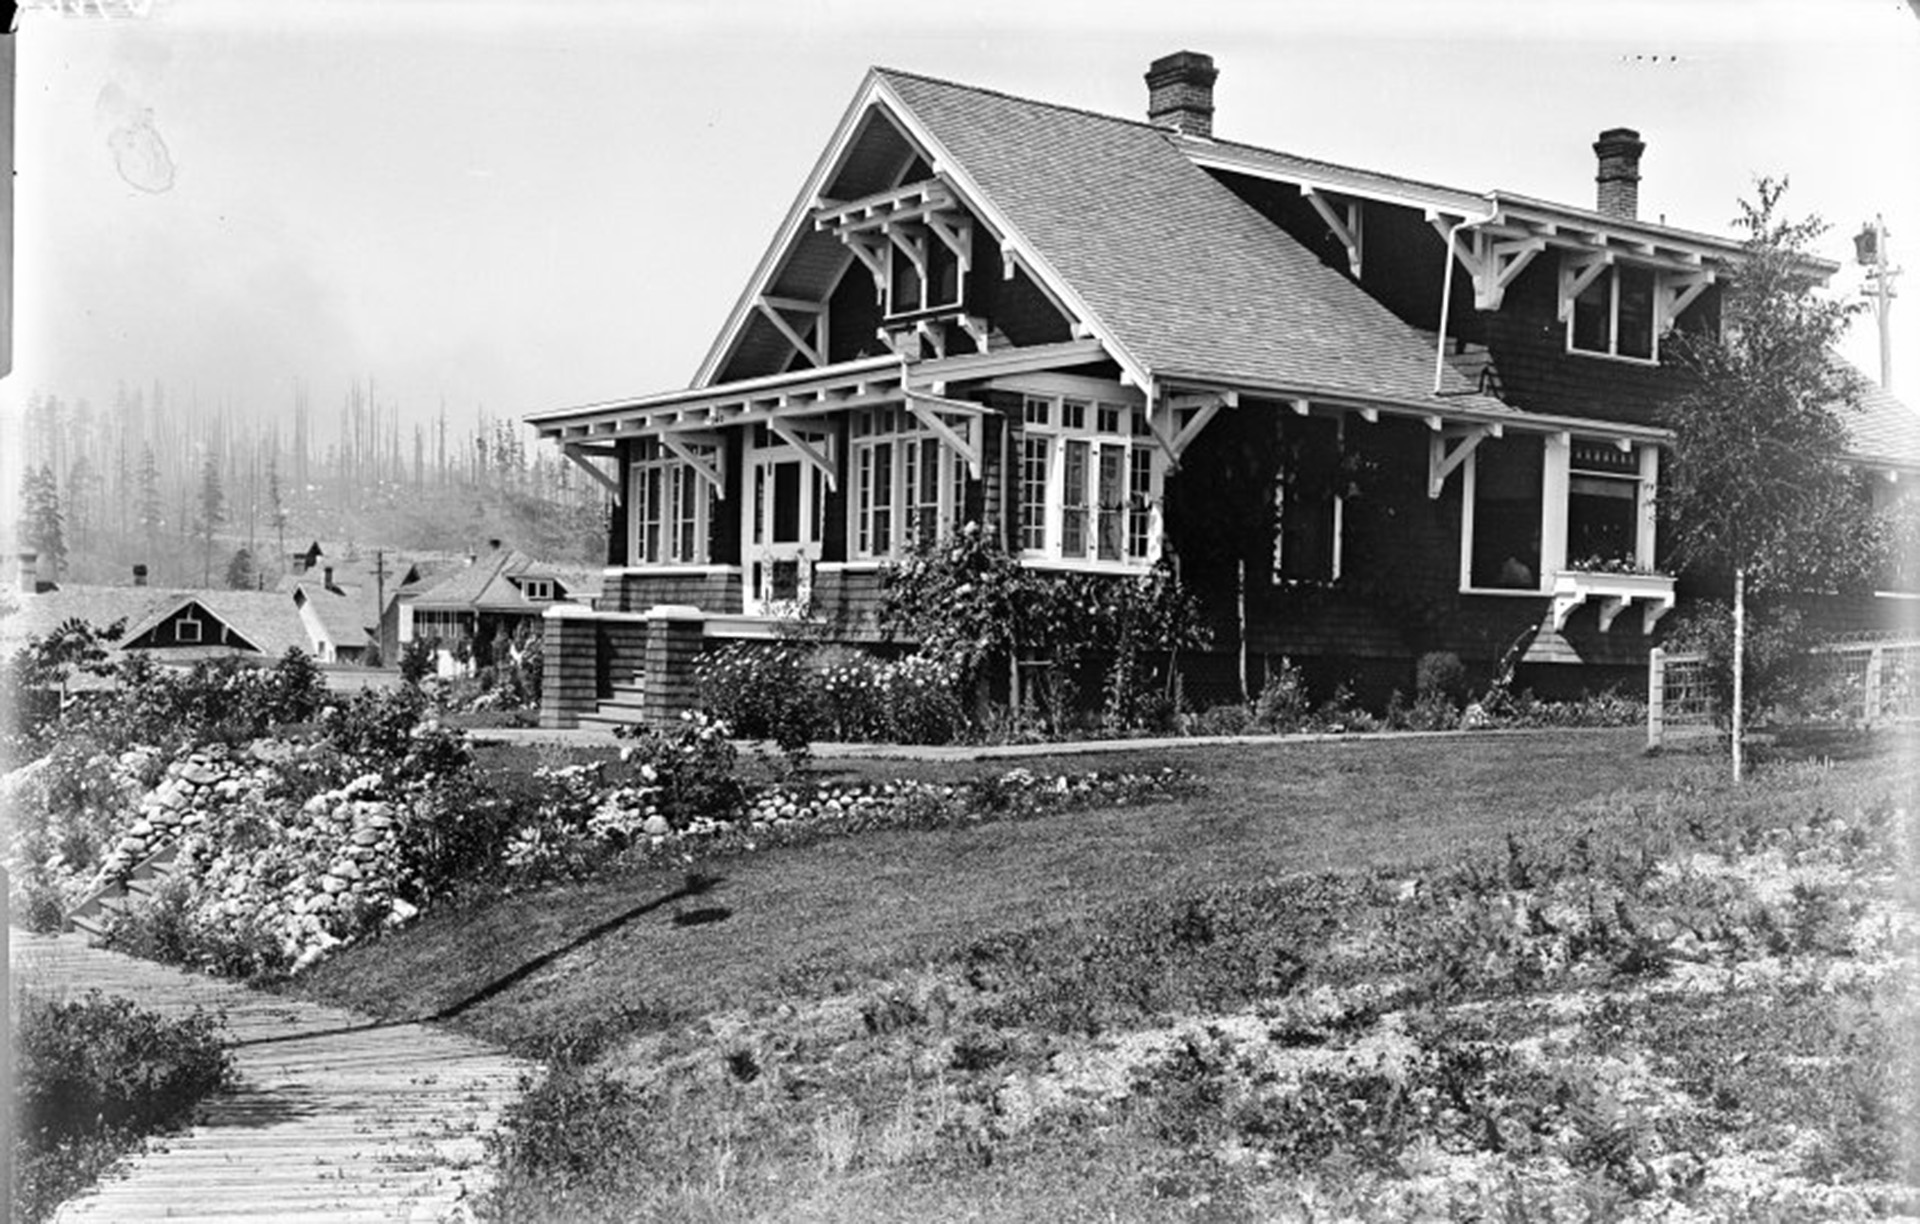 The Powell River Company Resident Mill Manager's house at 340 Oceanview in 1916.